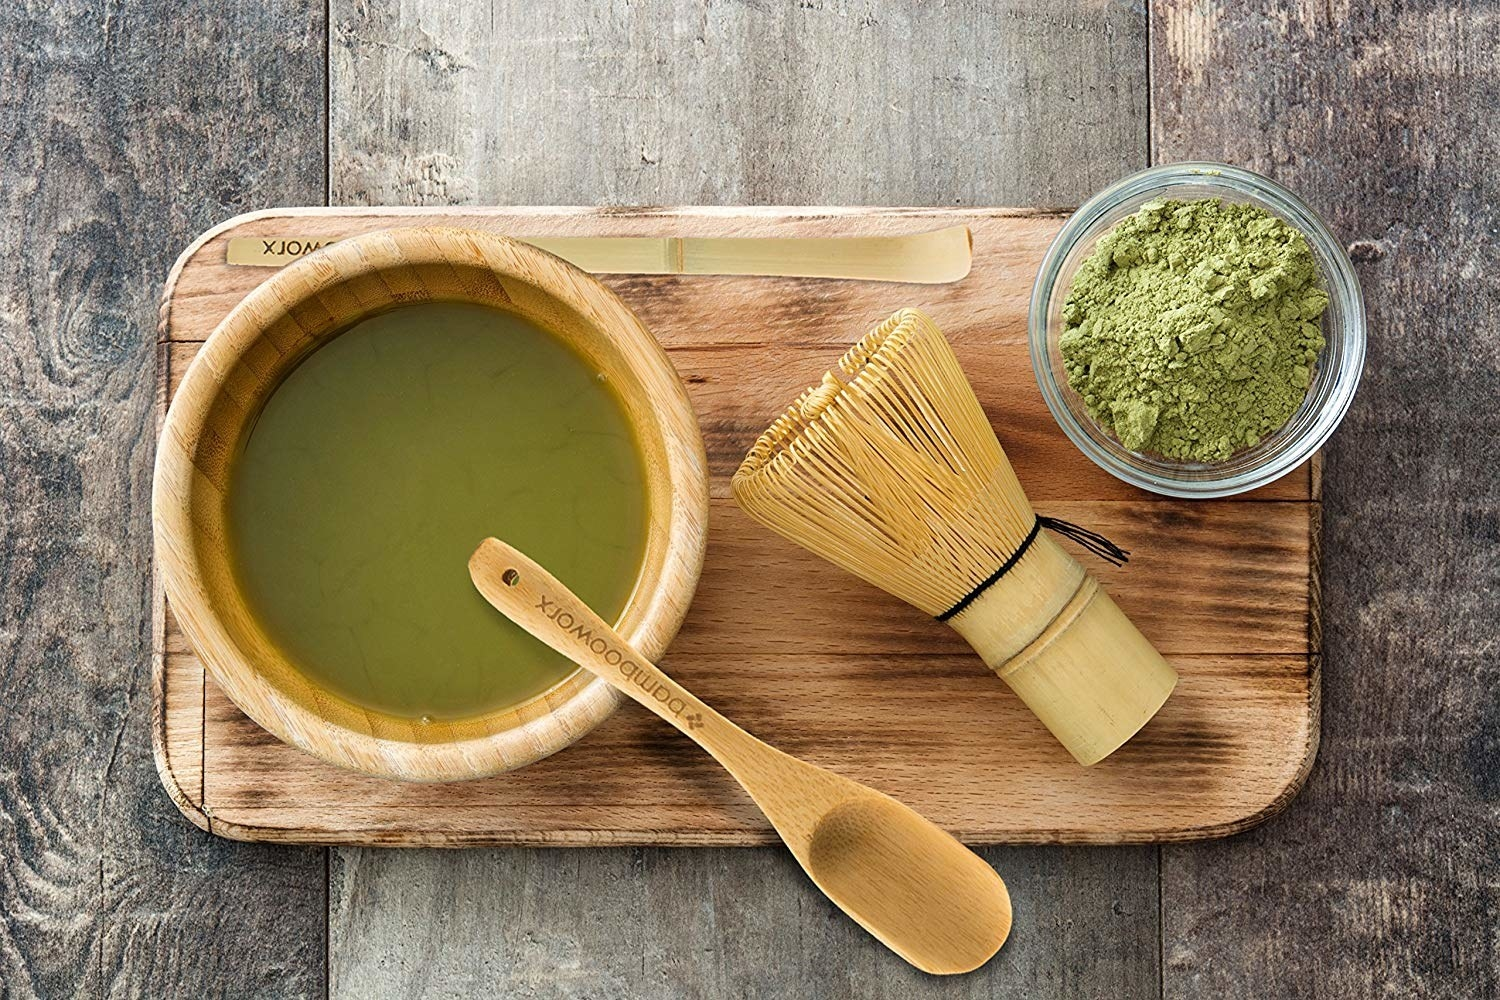 A wood bowl of matcha with a wood spoon, wood whisk, and small bowl of matcha powder on a wood board